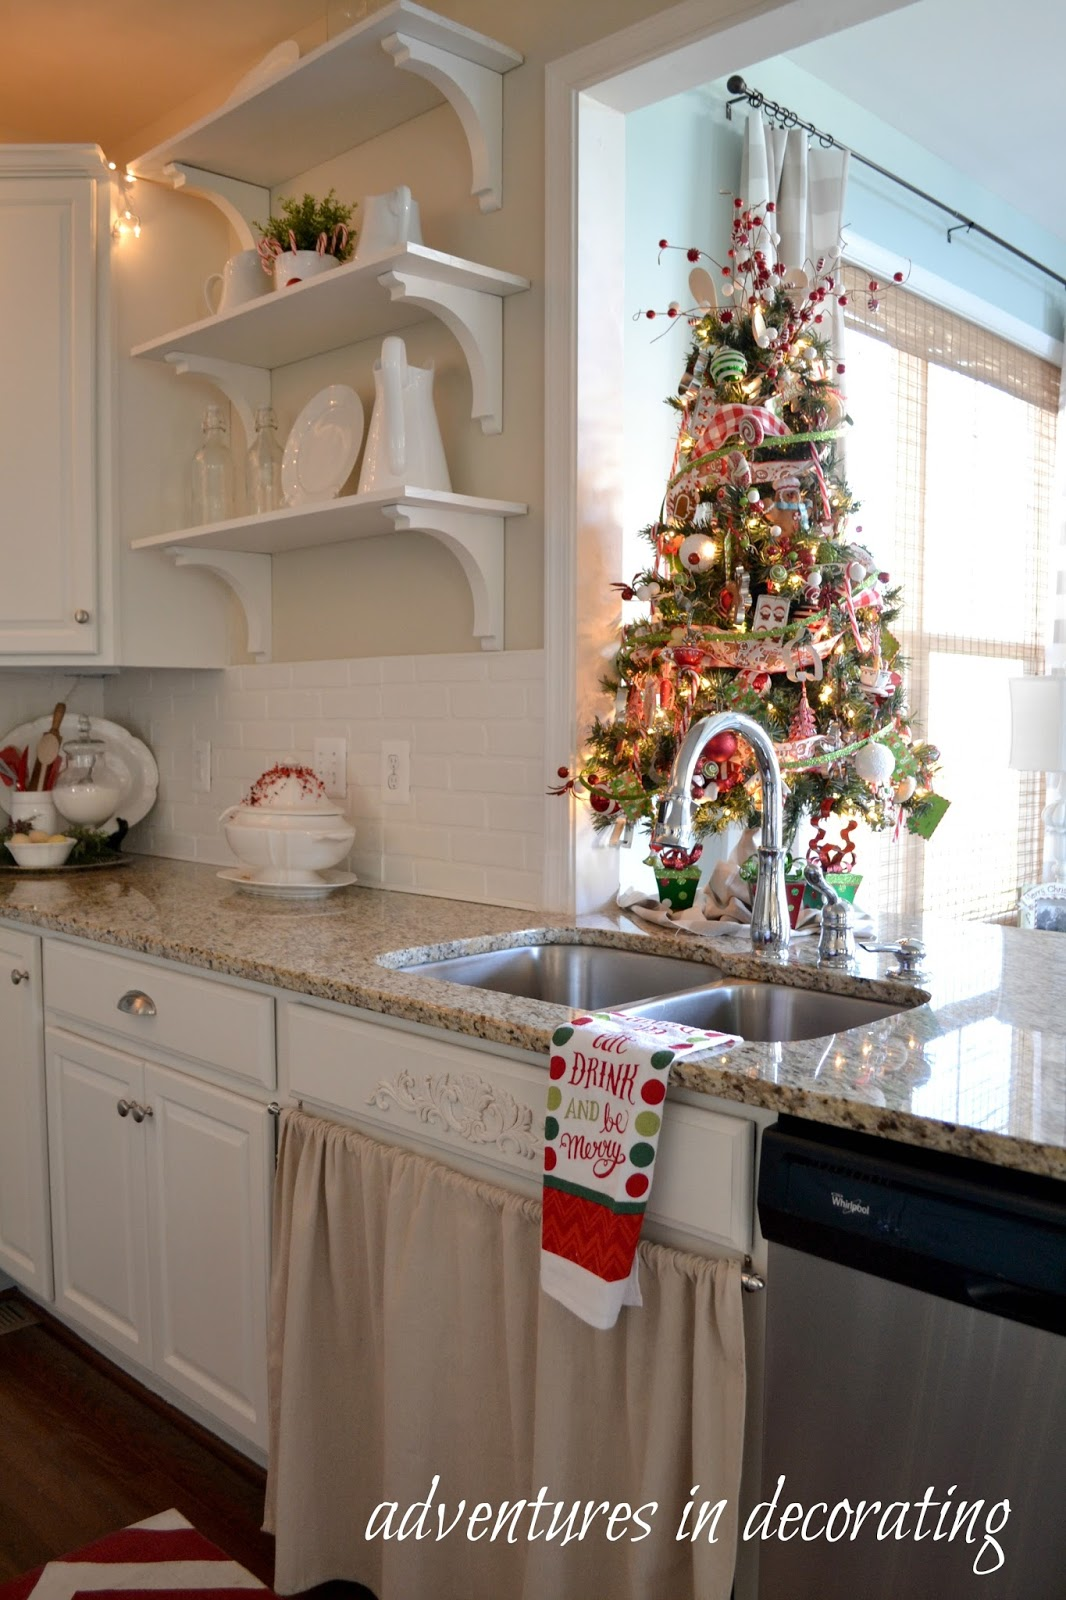 Adventures In Decorating Our 2015 Fall Kitchen: Adventures In Decorating: Our 2015 Christmas Kitchen